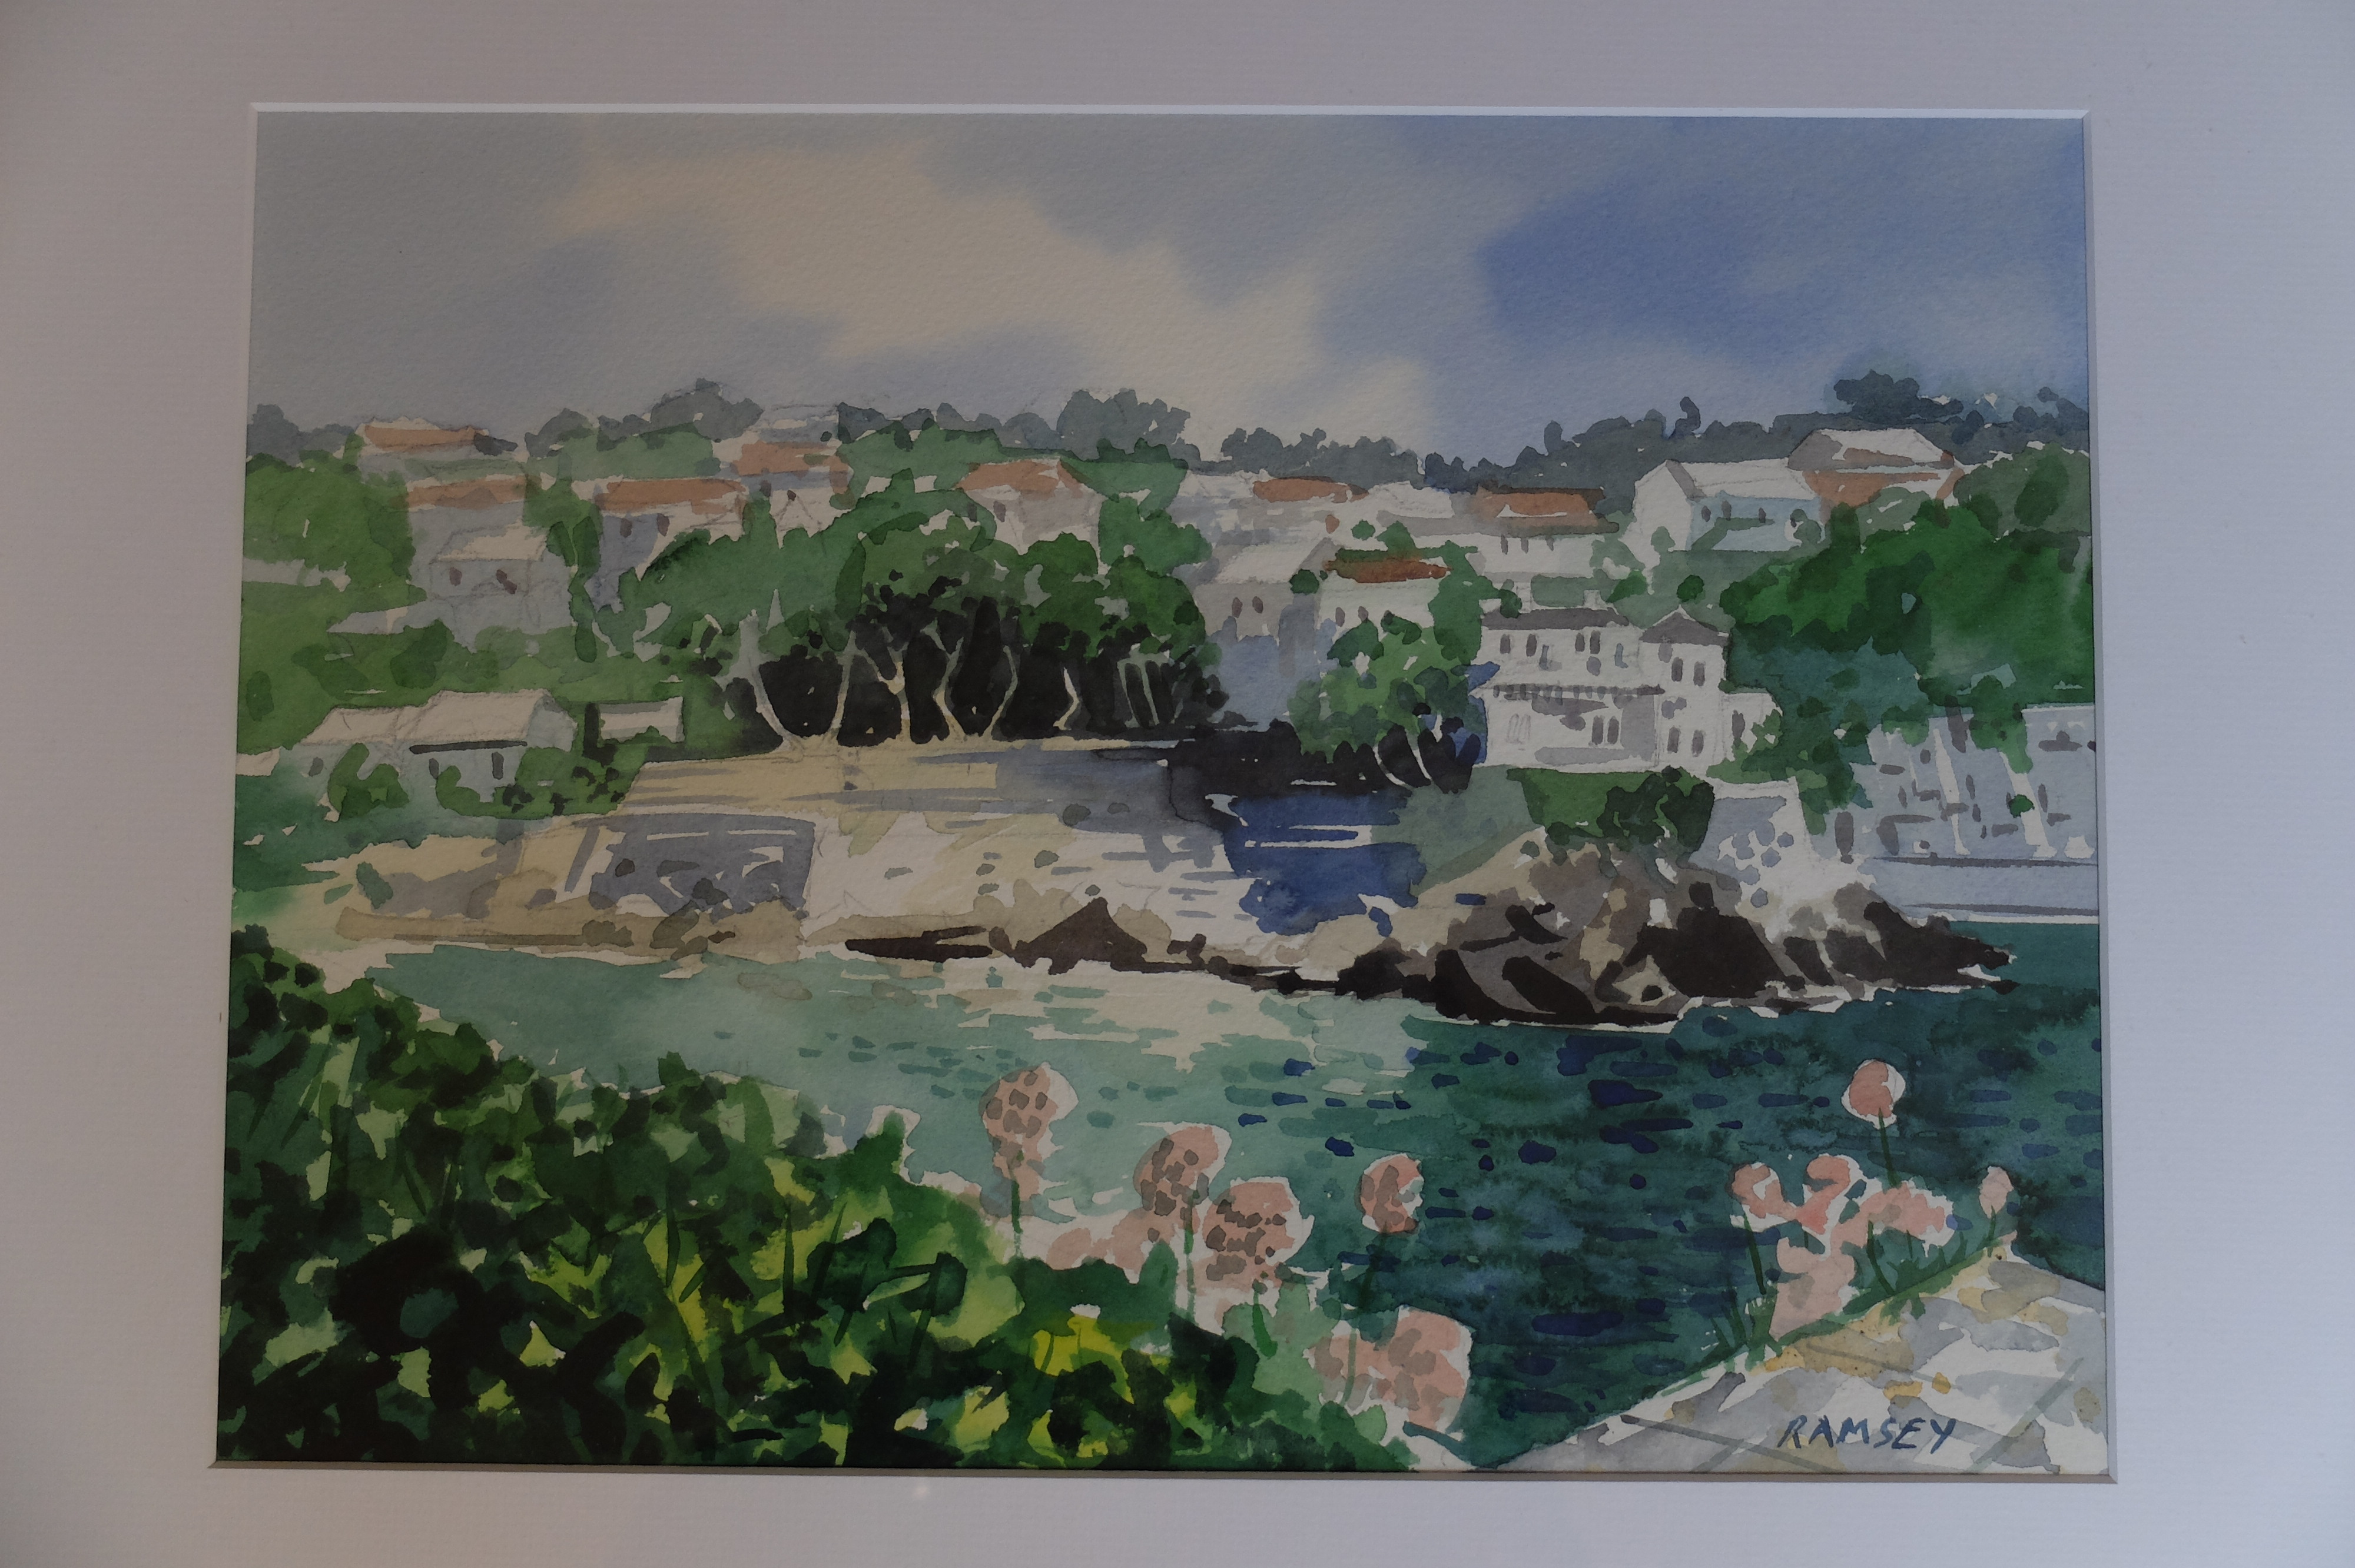 Mental health patients' work spotlighted in Bournemouth art gallery